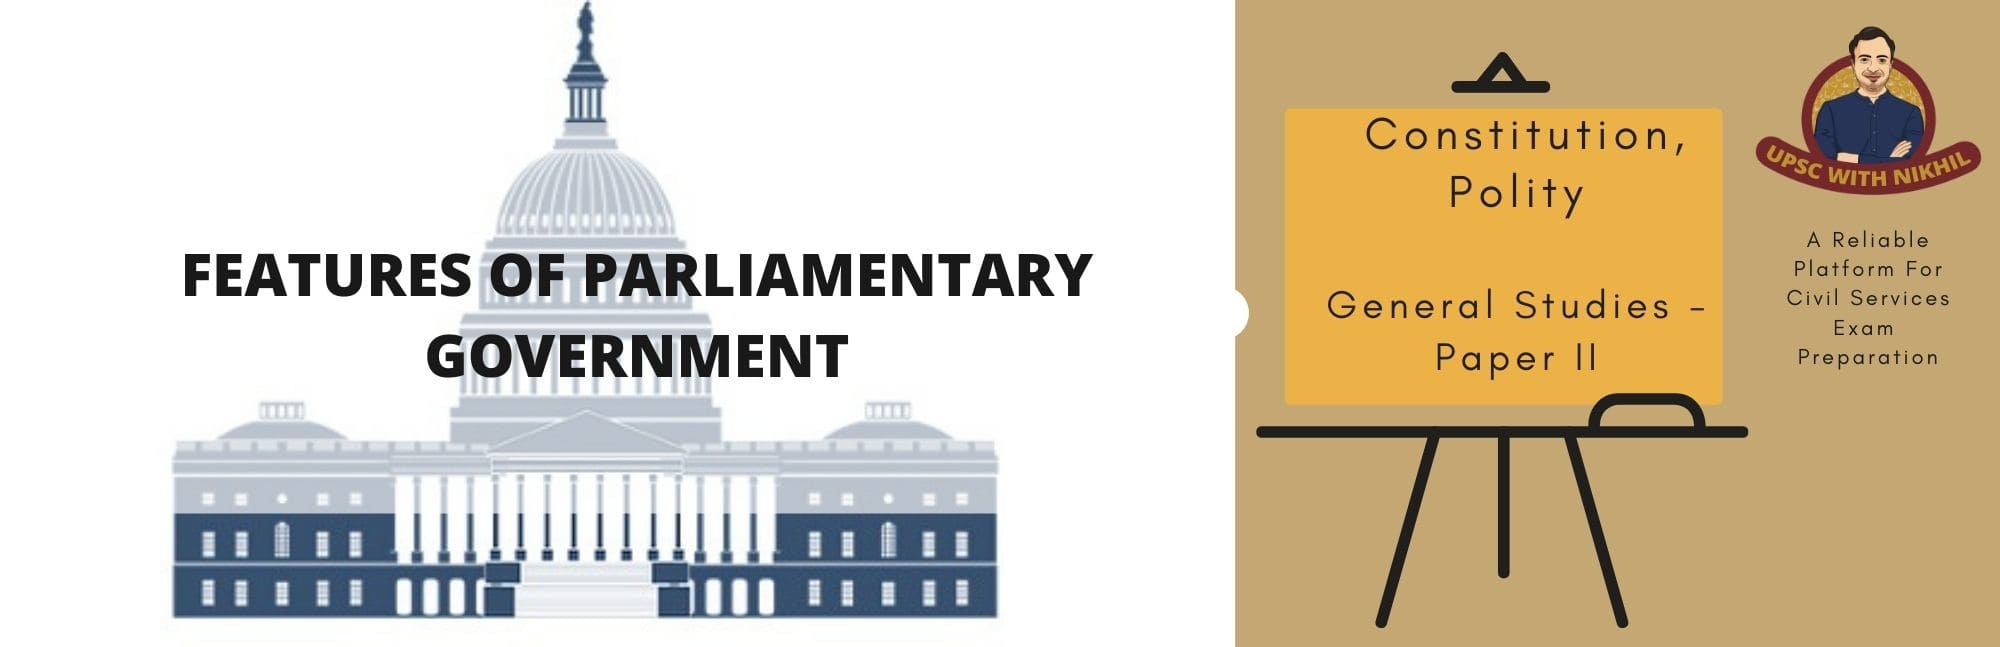 Features of Parliamentary Government